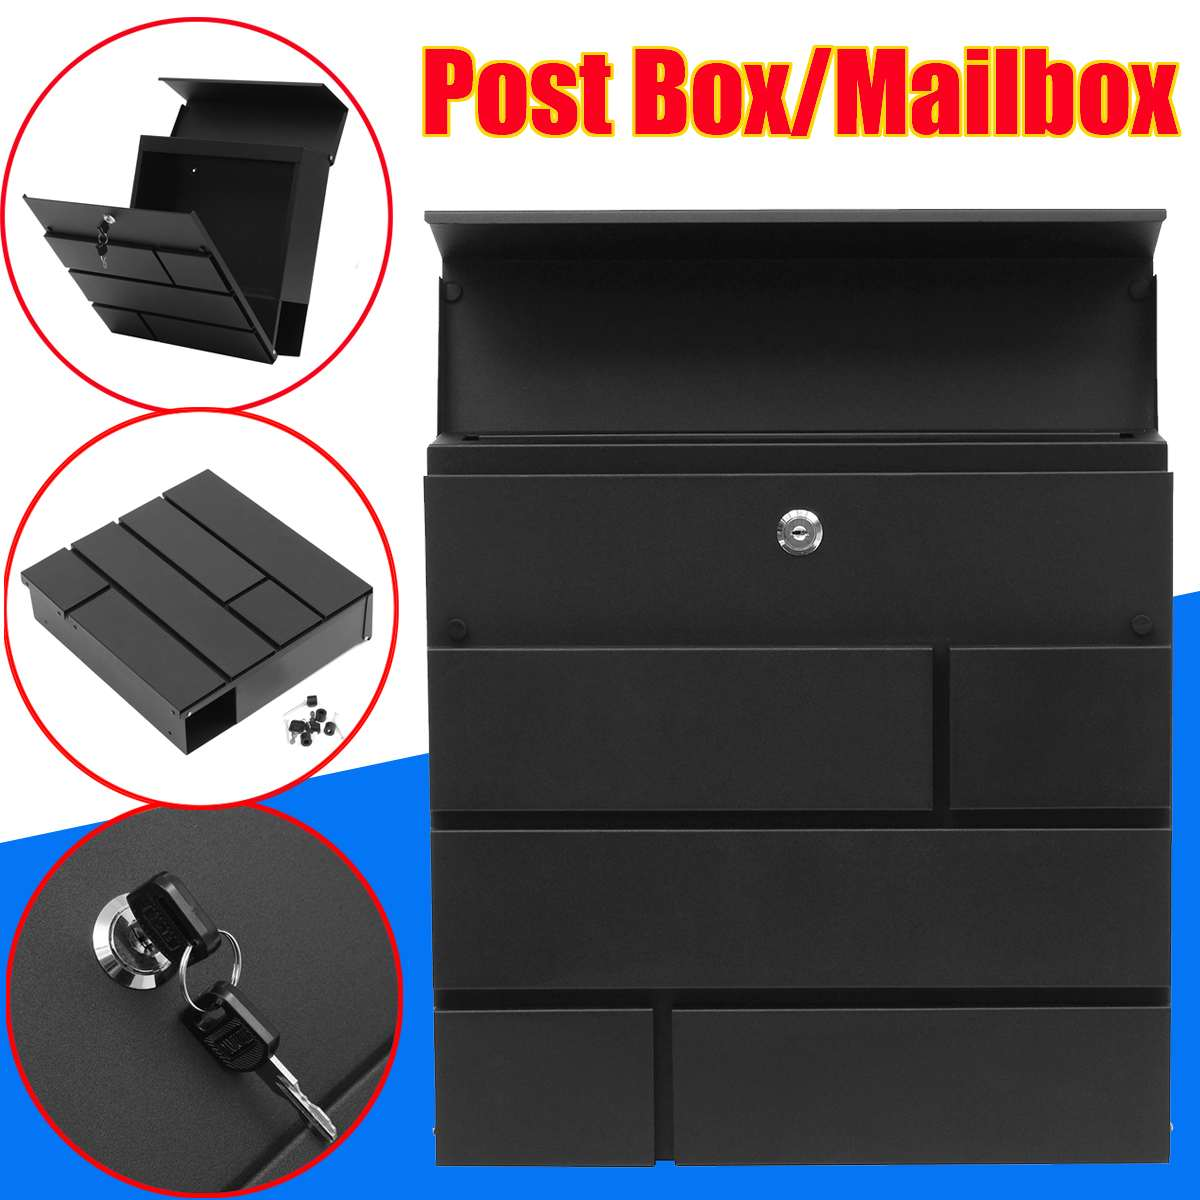 Newspaper Letter Wall Mounted Paint Mailbox Stainless Steel Metal Mail Box Case Post Box Lockable Box Garden Ornament